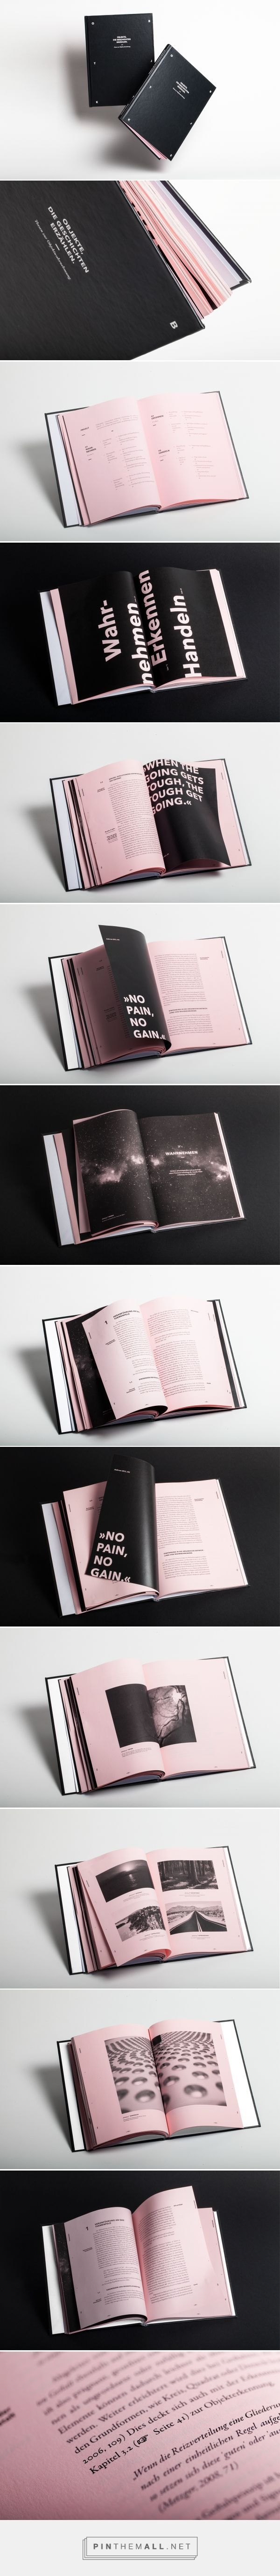 Master's Thesis Book Design on Behance